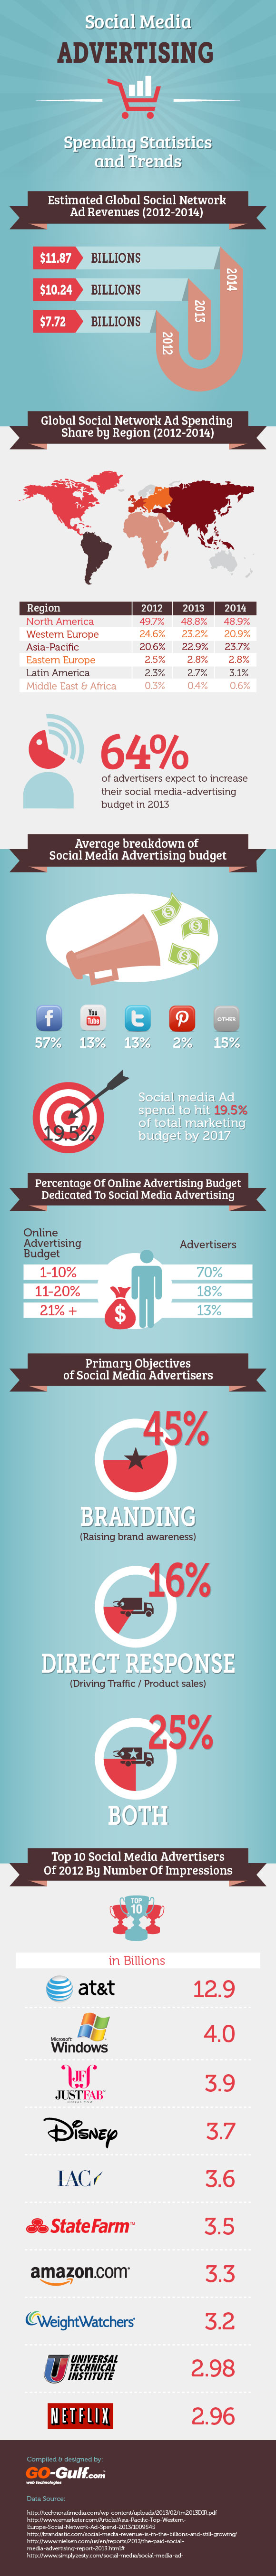 Social Media Advertising - Spending Statistics and Trends